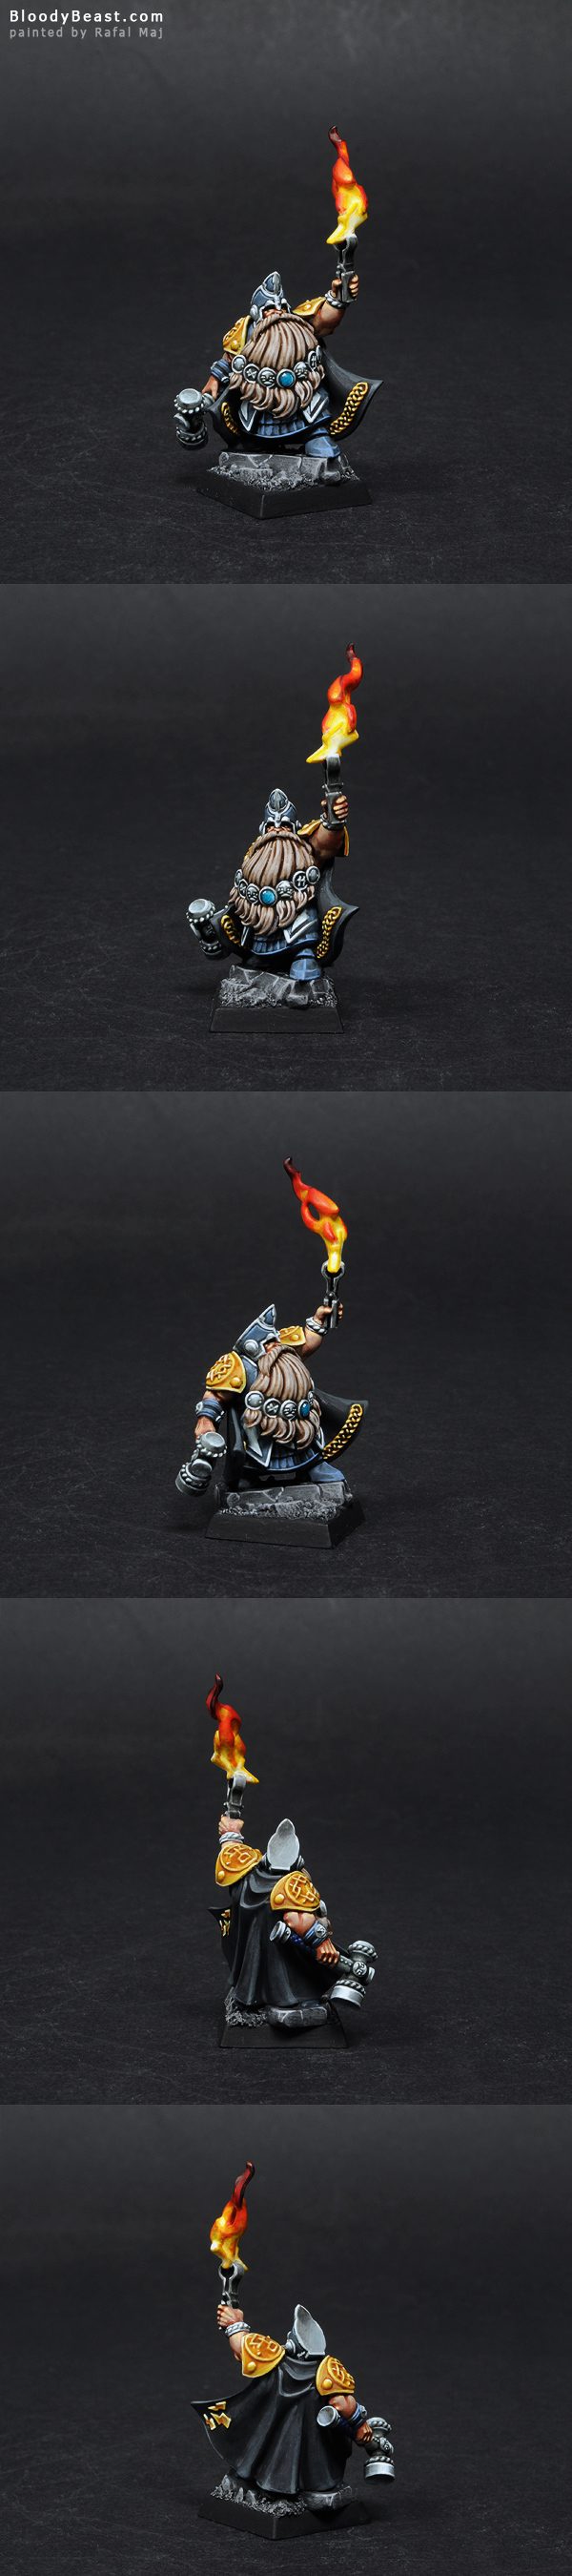 Dwarf Runelord painted by Rafal Maj (BloodyBeast.com)